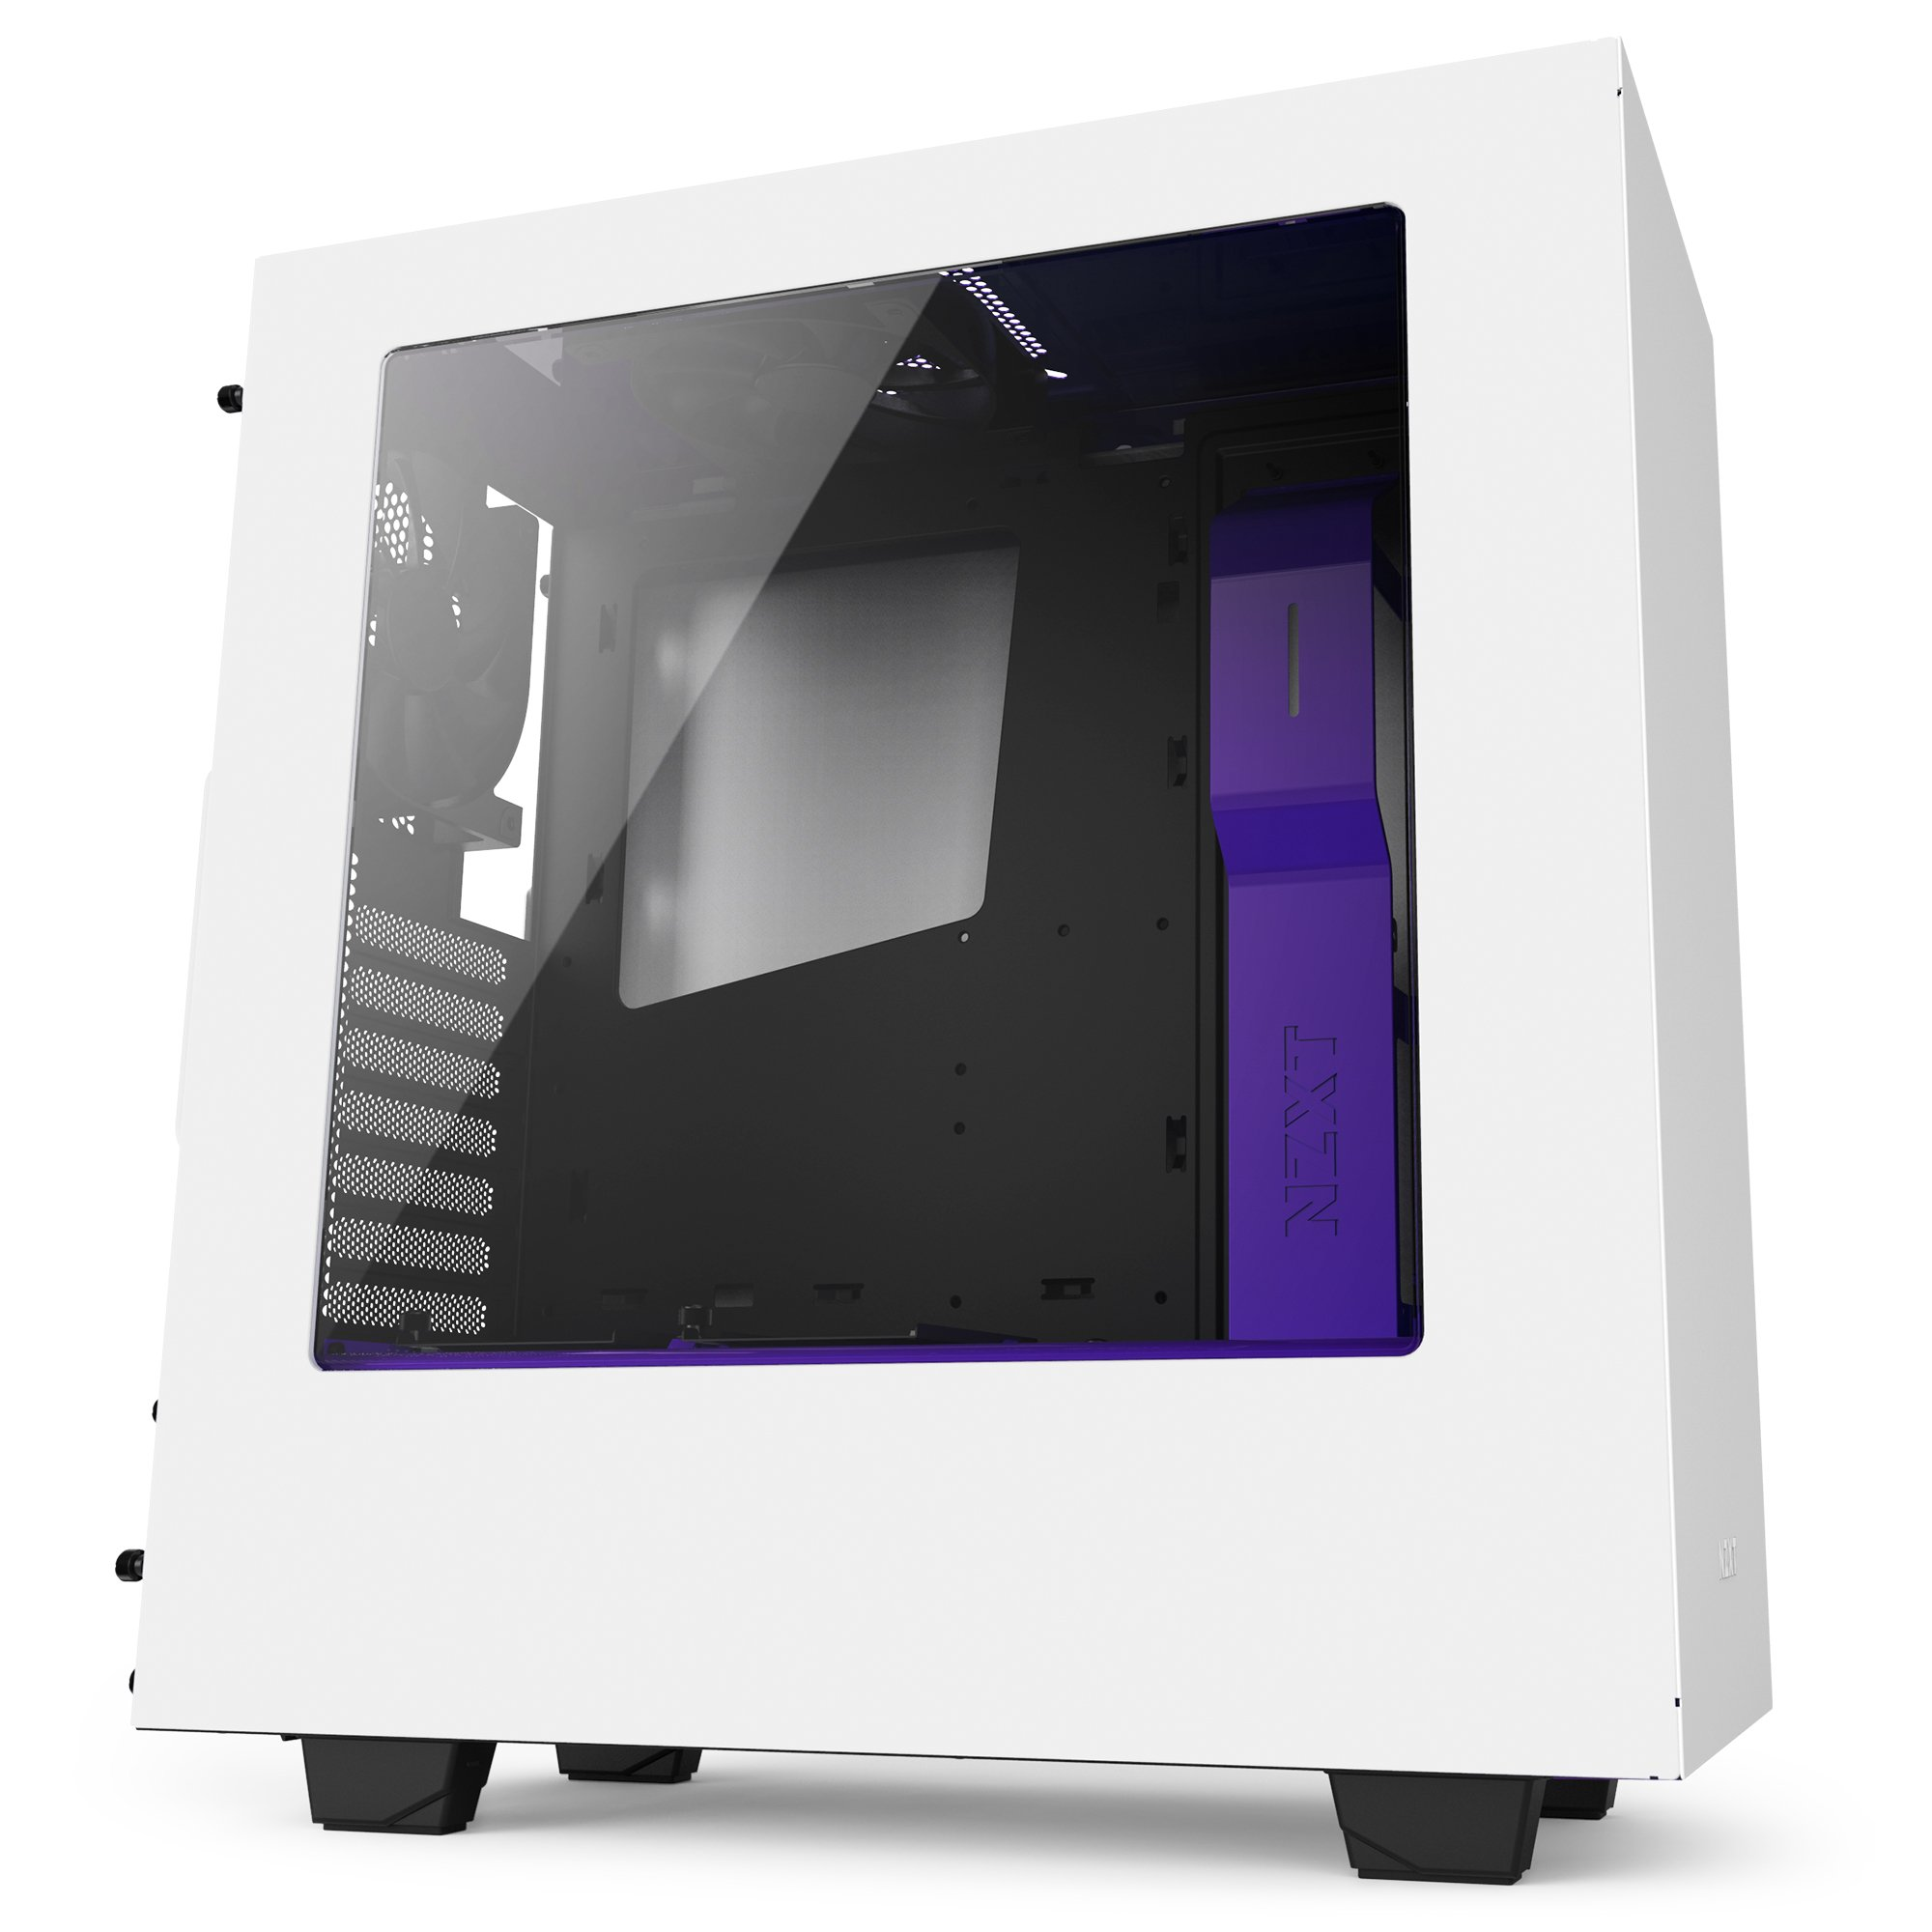 NZXT S340 Compact ATX Mid-Tower Case with All-Steel Panels - Matte White + Purple